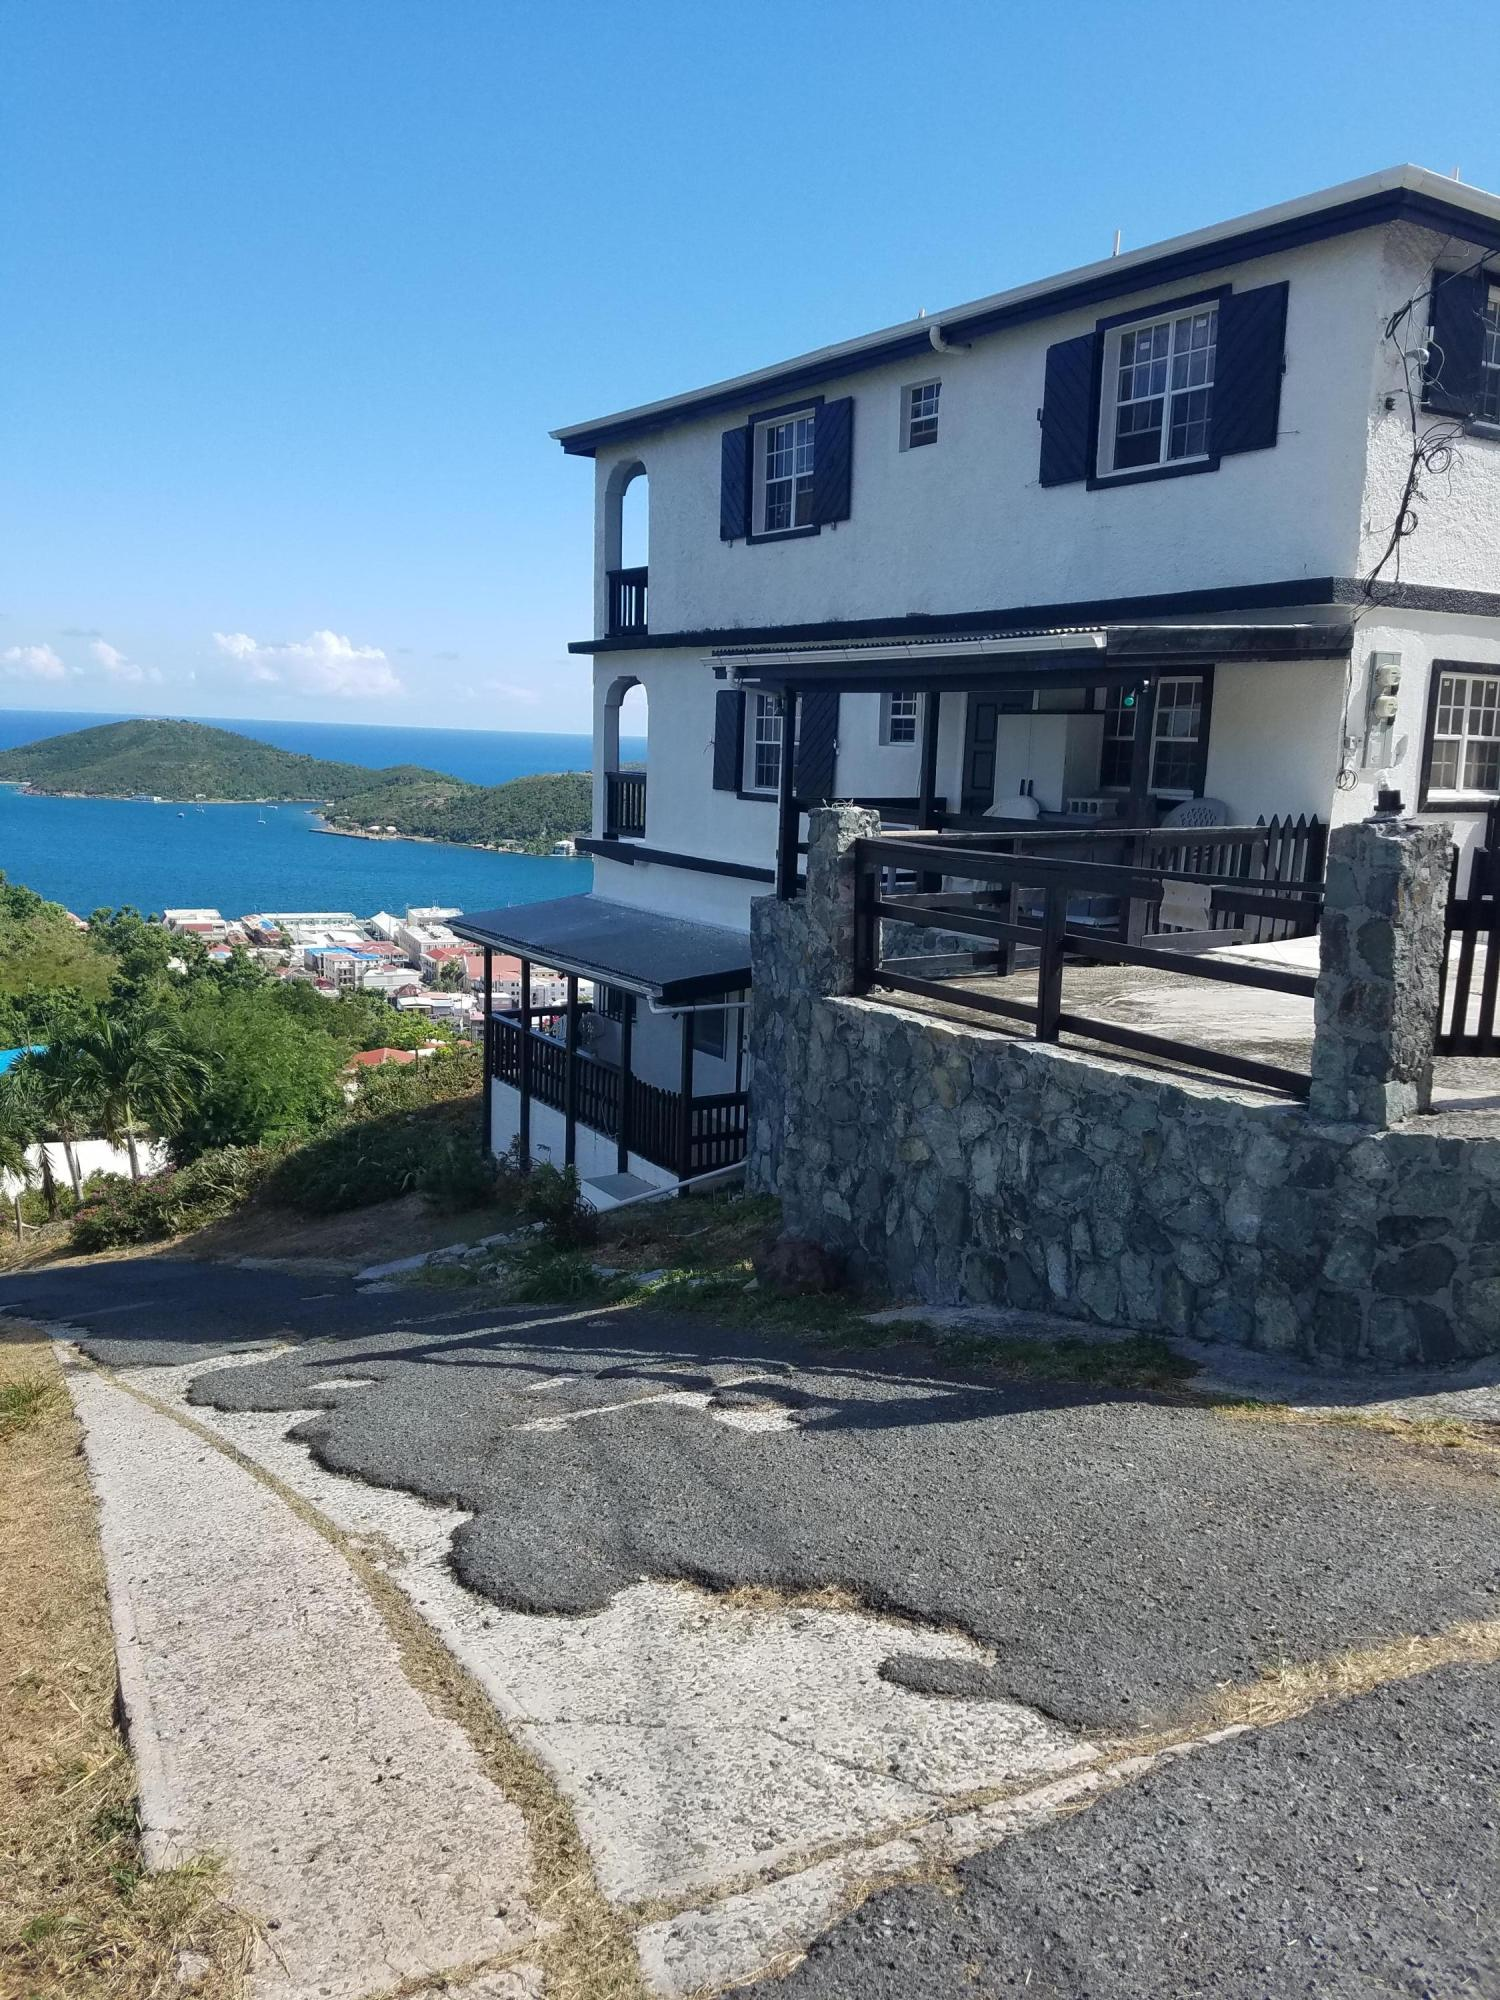 Multi-Family Home for Sale at 39 Agnes Fancy GNS 39 Agnes Fancy GNS St Thomas, Virgin Islands 00802 United States Virgin Islands